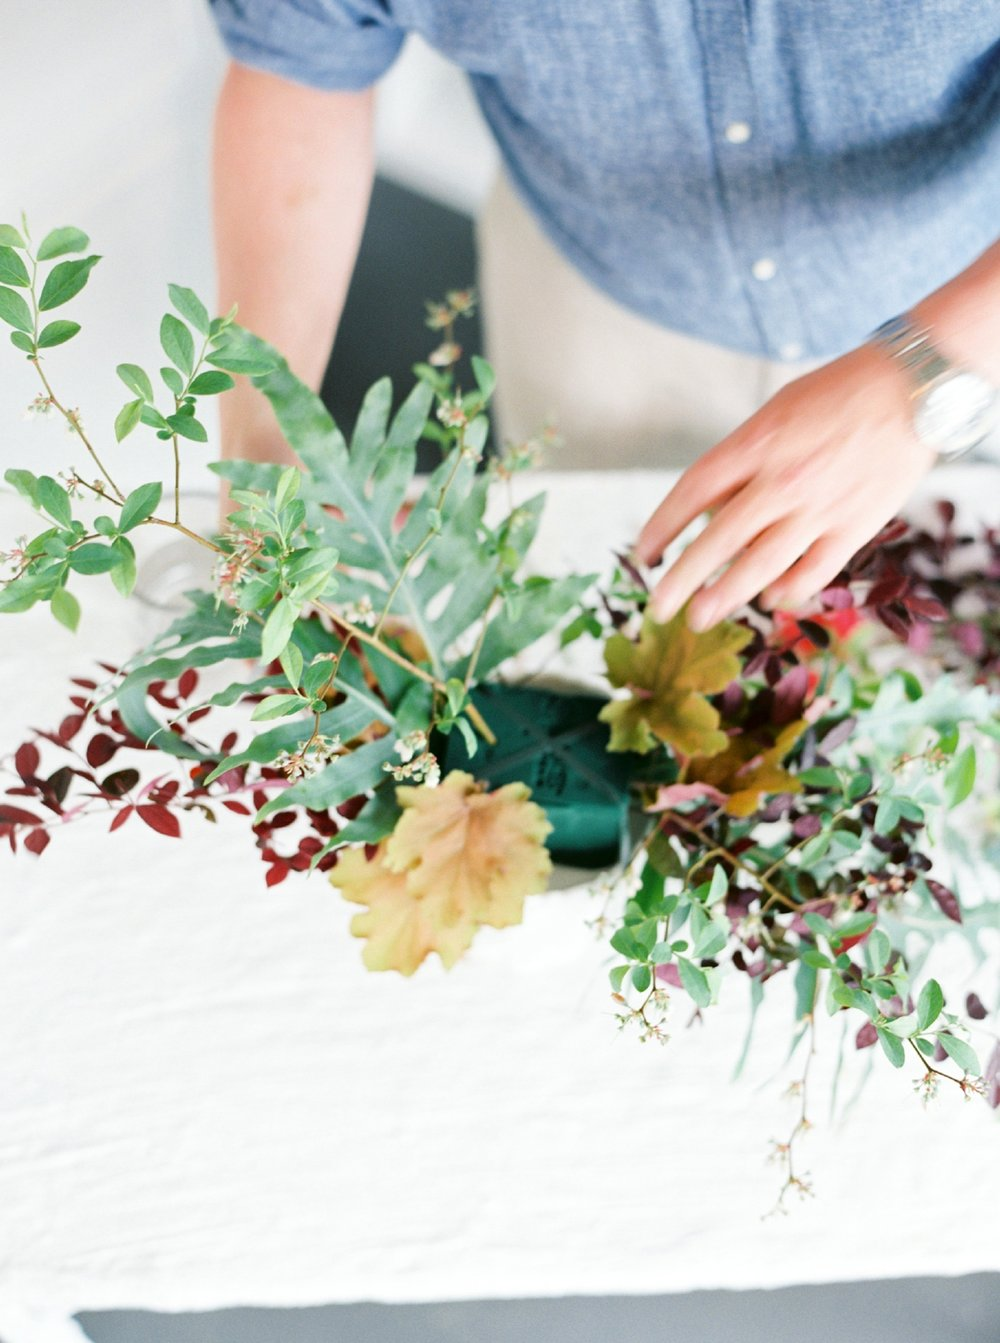 How To Make a Garden Fabulous Centerpiece Rosemary Beach Florist  Myrtie Blue  Shannon Griffin_0019.jpg